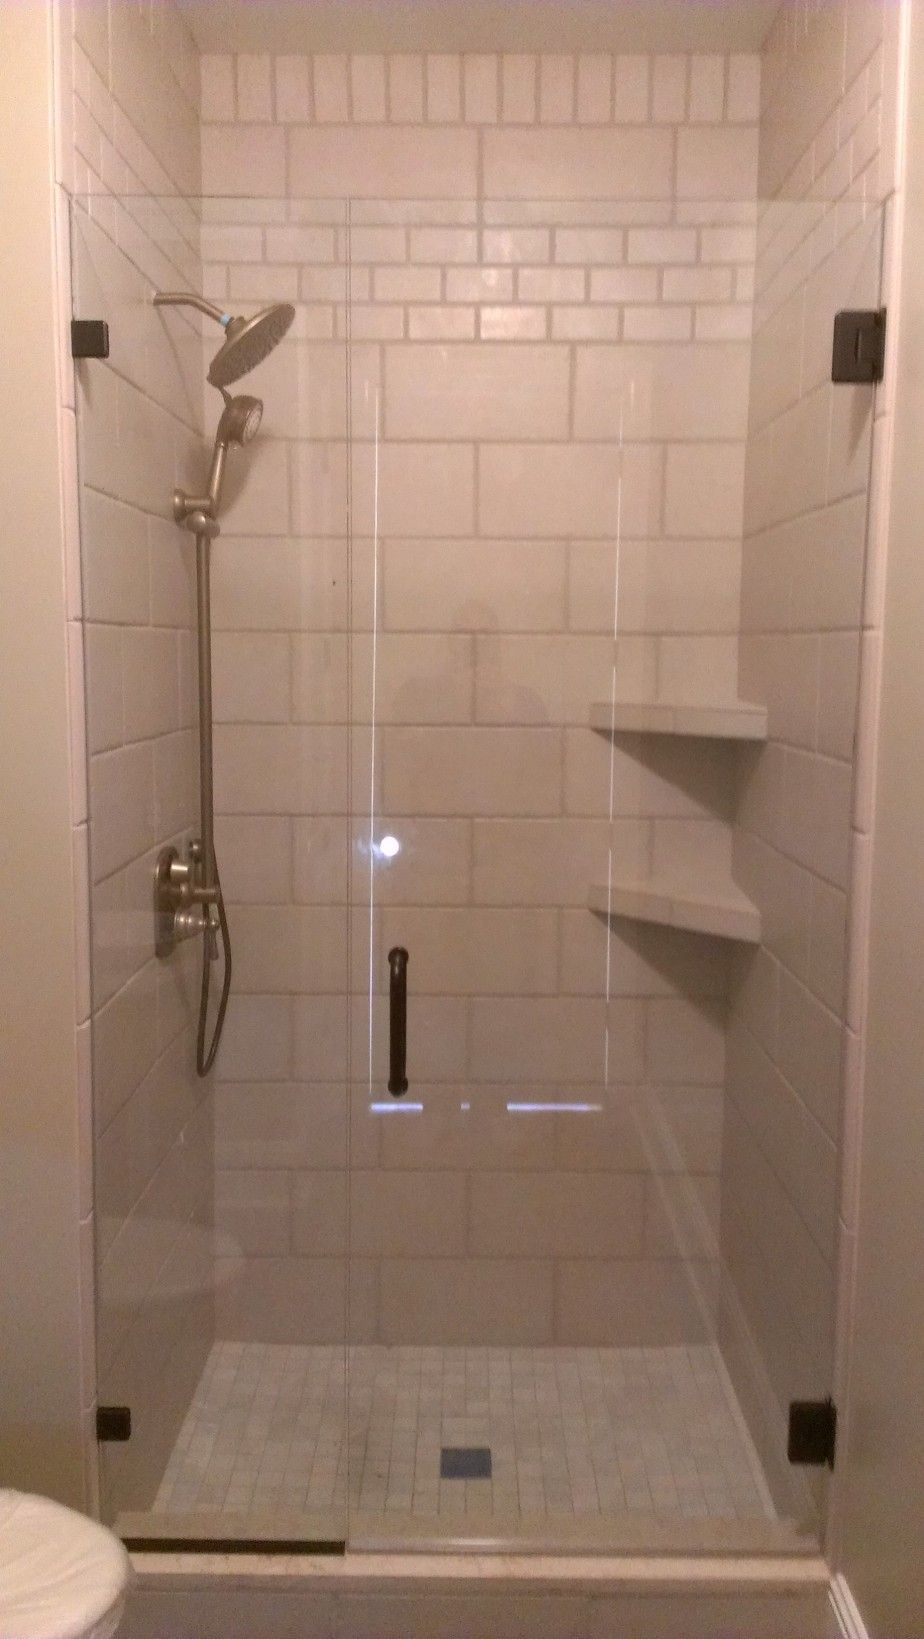 Bathroom Sleek White Tiled Corner Showers With Diagonal